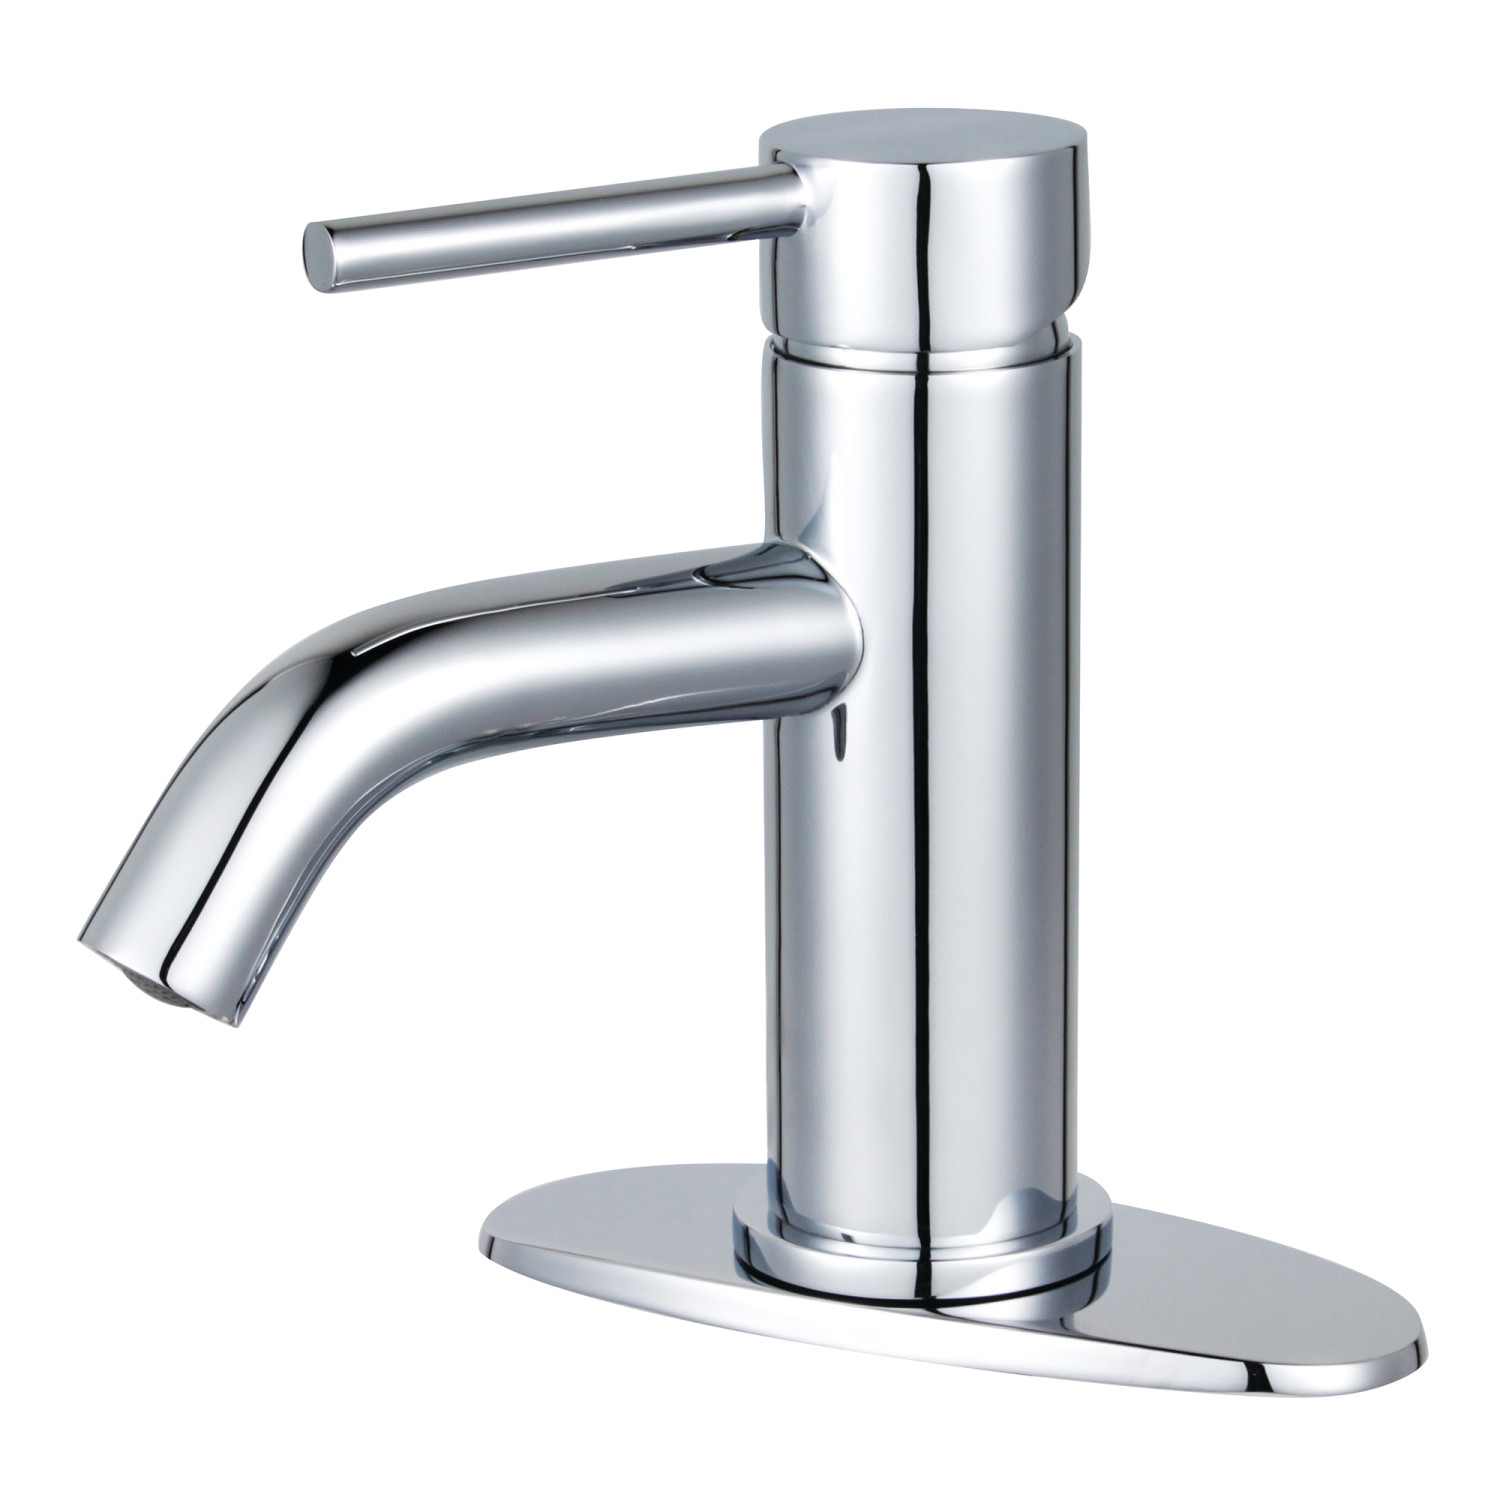 Single-Handle 1-Hole Deck Mount Bathroom Faucet with Push Pop-Up in Polished Chrome with 3 Finish Options